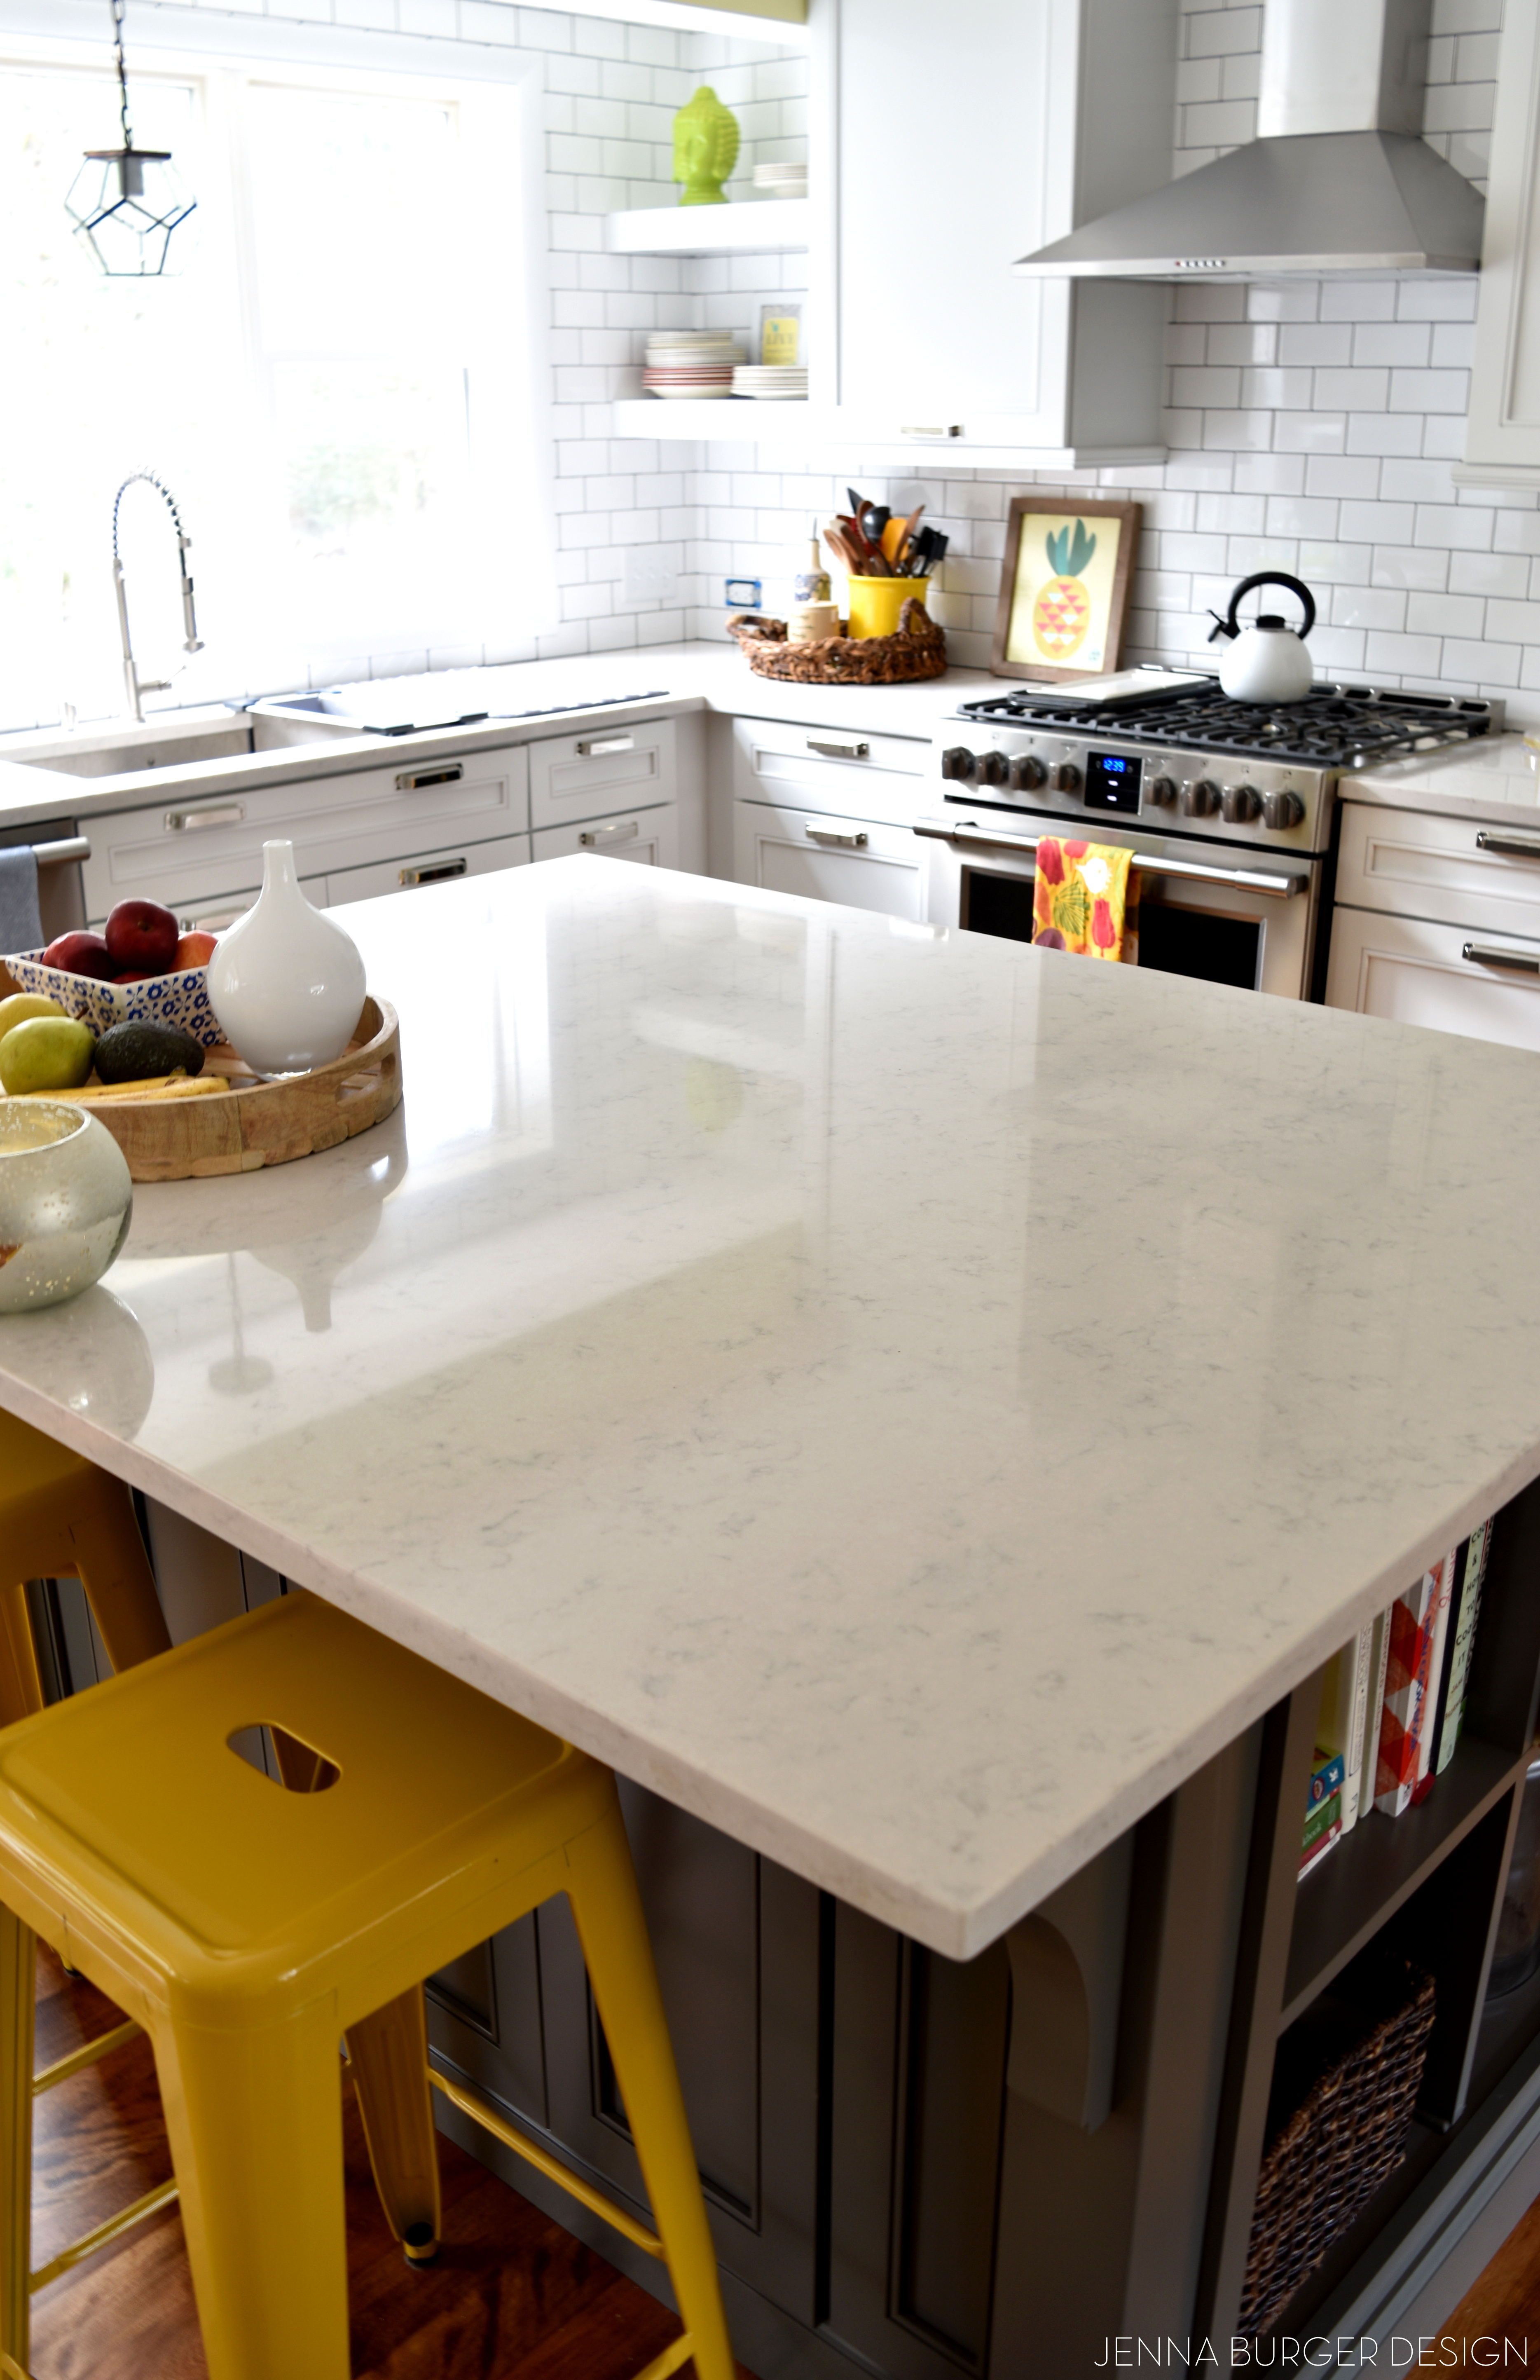 How To Choose The Right Countertop For Your Kitchen! Pros + Cons + Advice  For